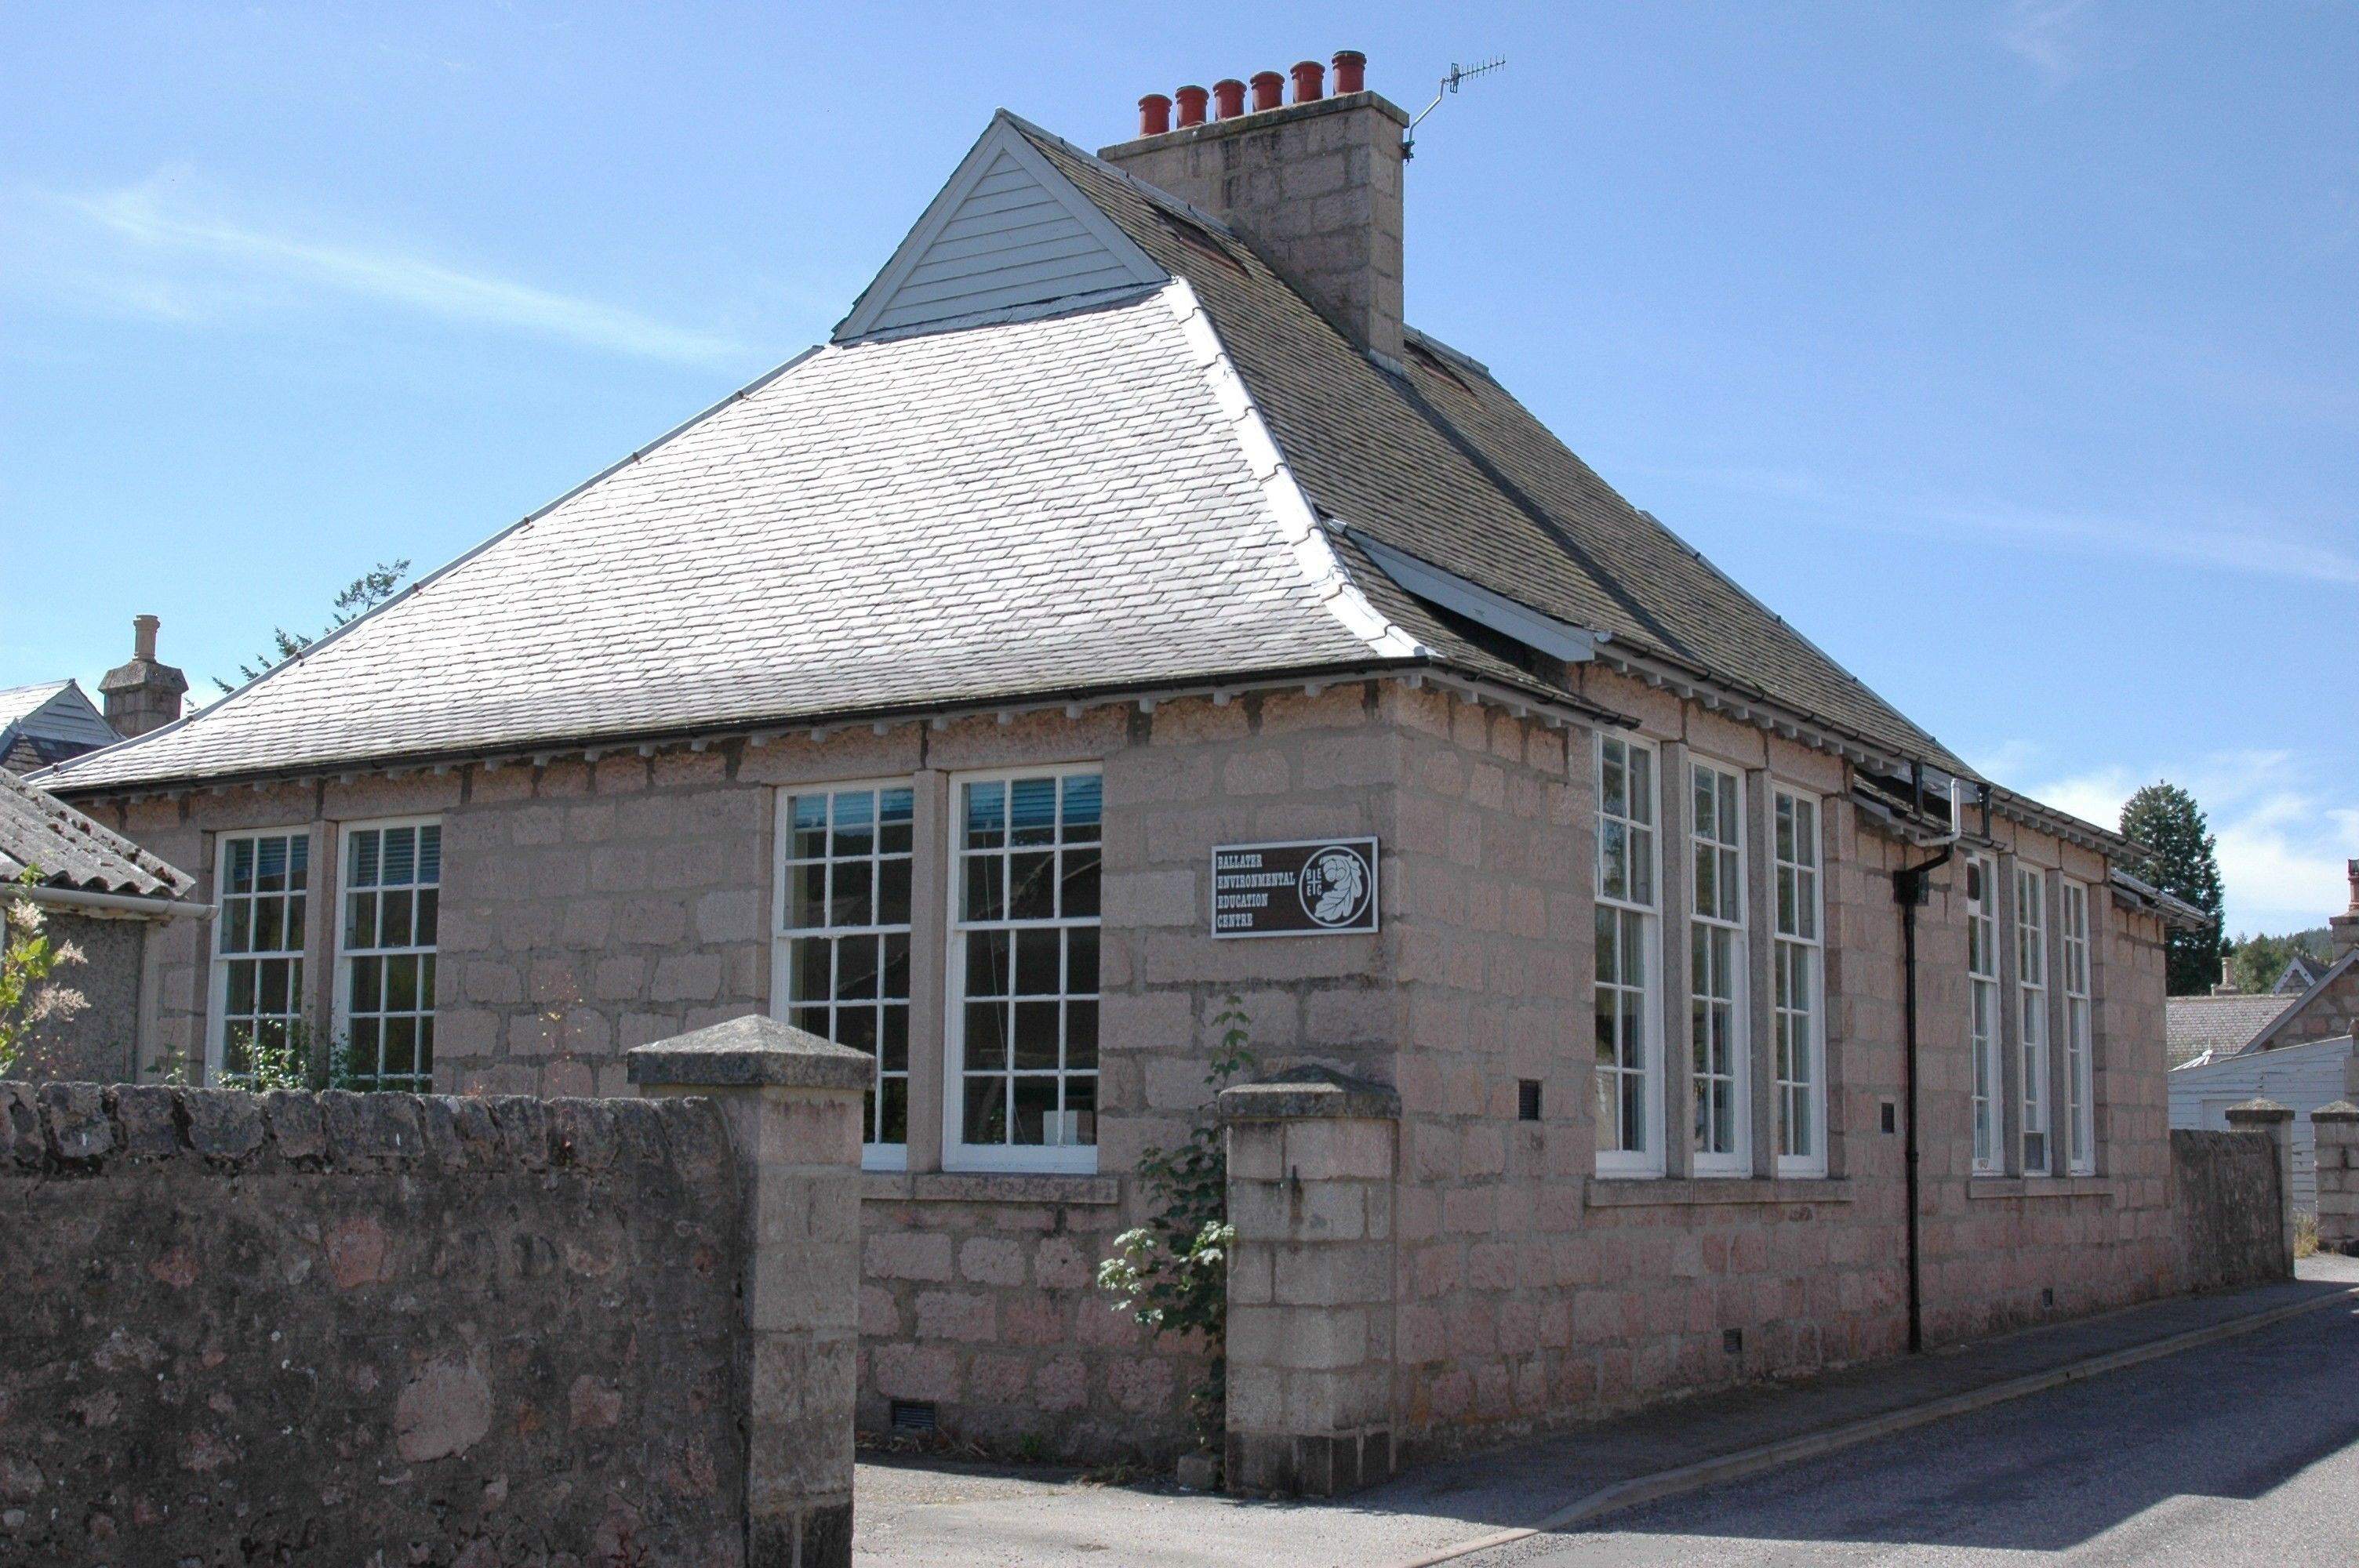 The old Ballater School